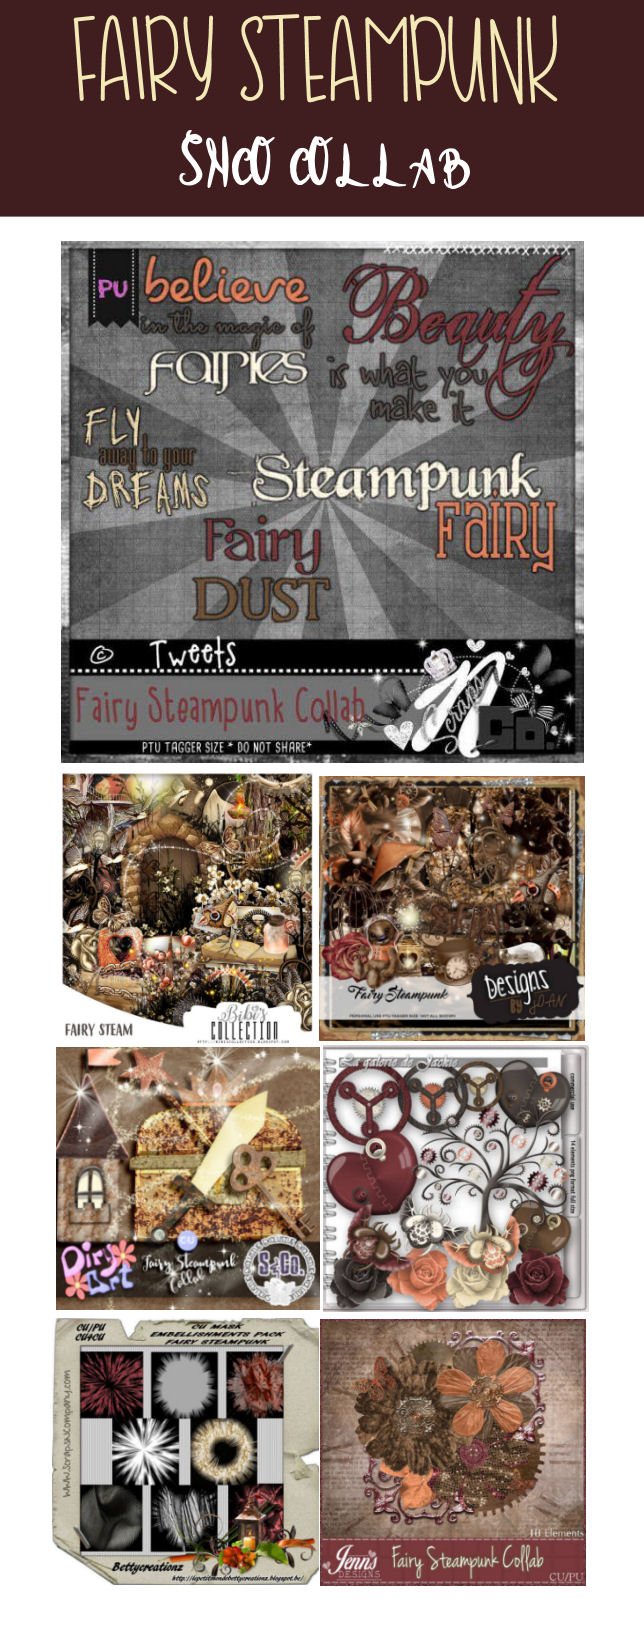 FAIRY STEAMPUNK 2017 PART 1